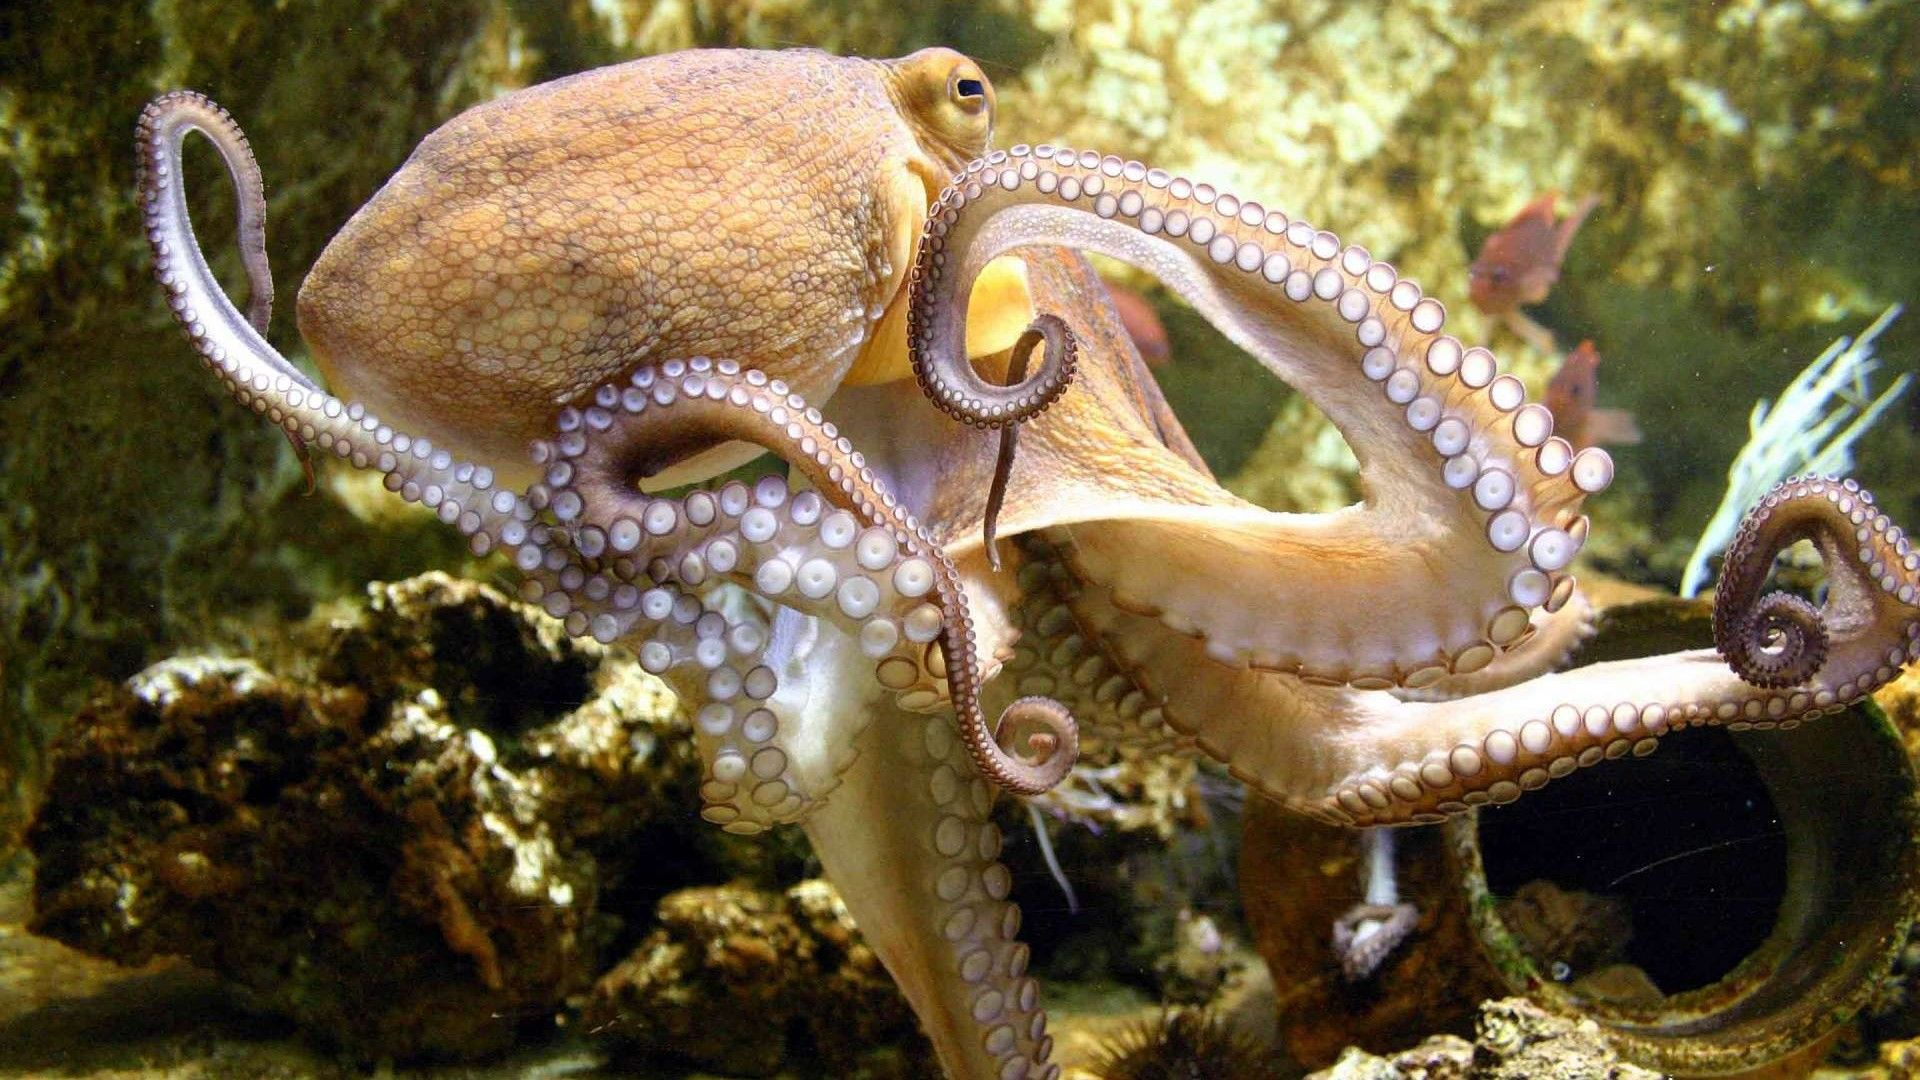 Octopus Pictures